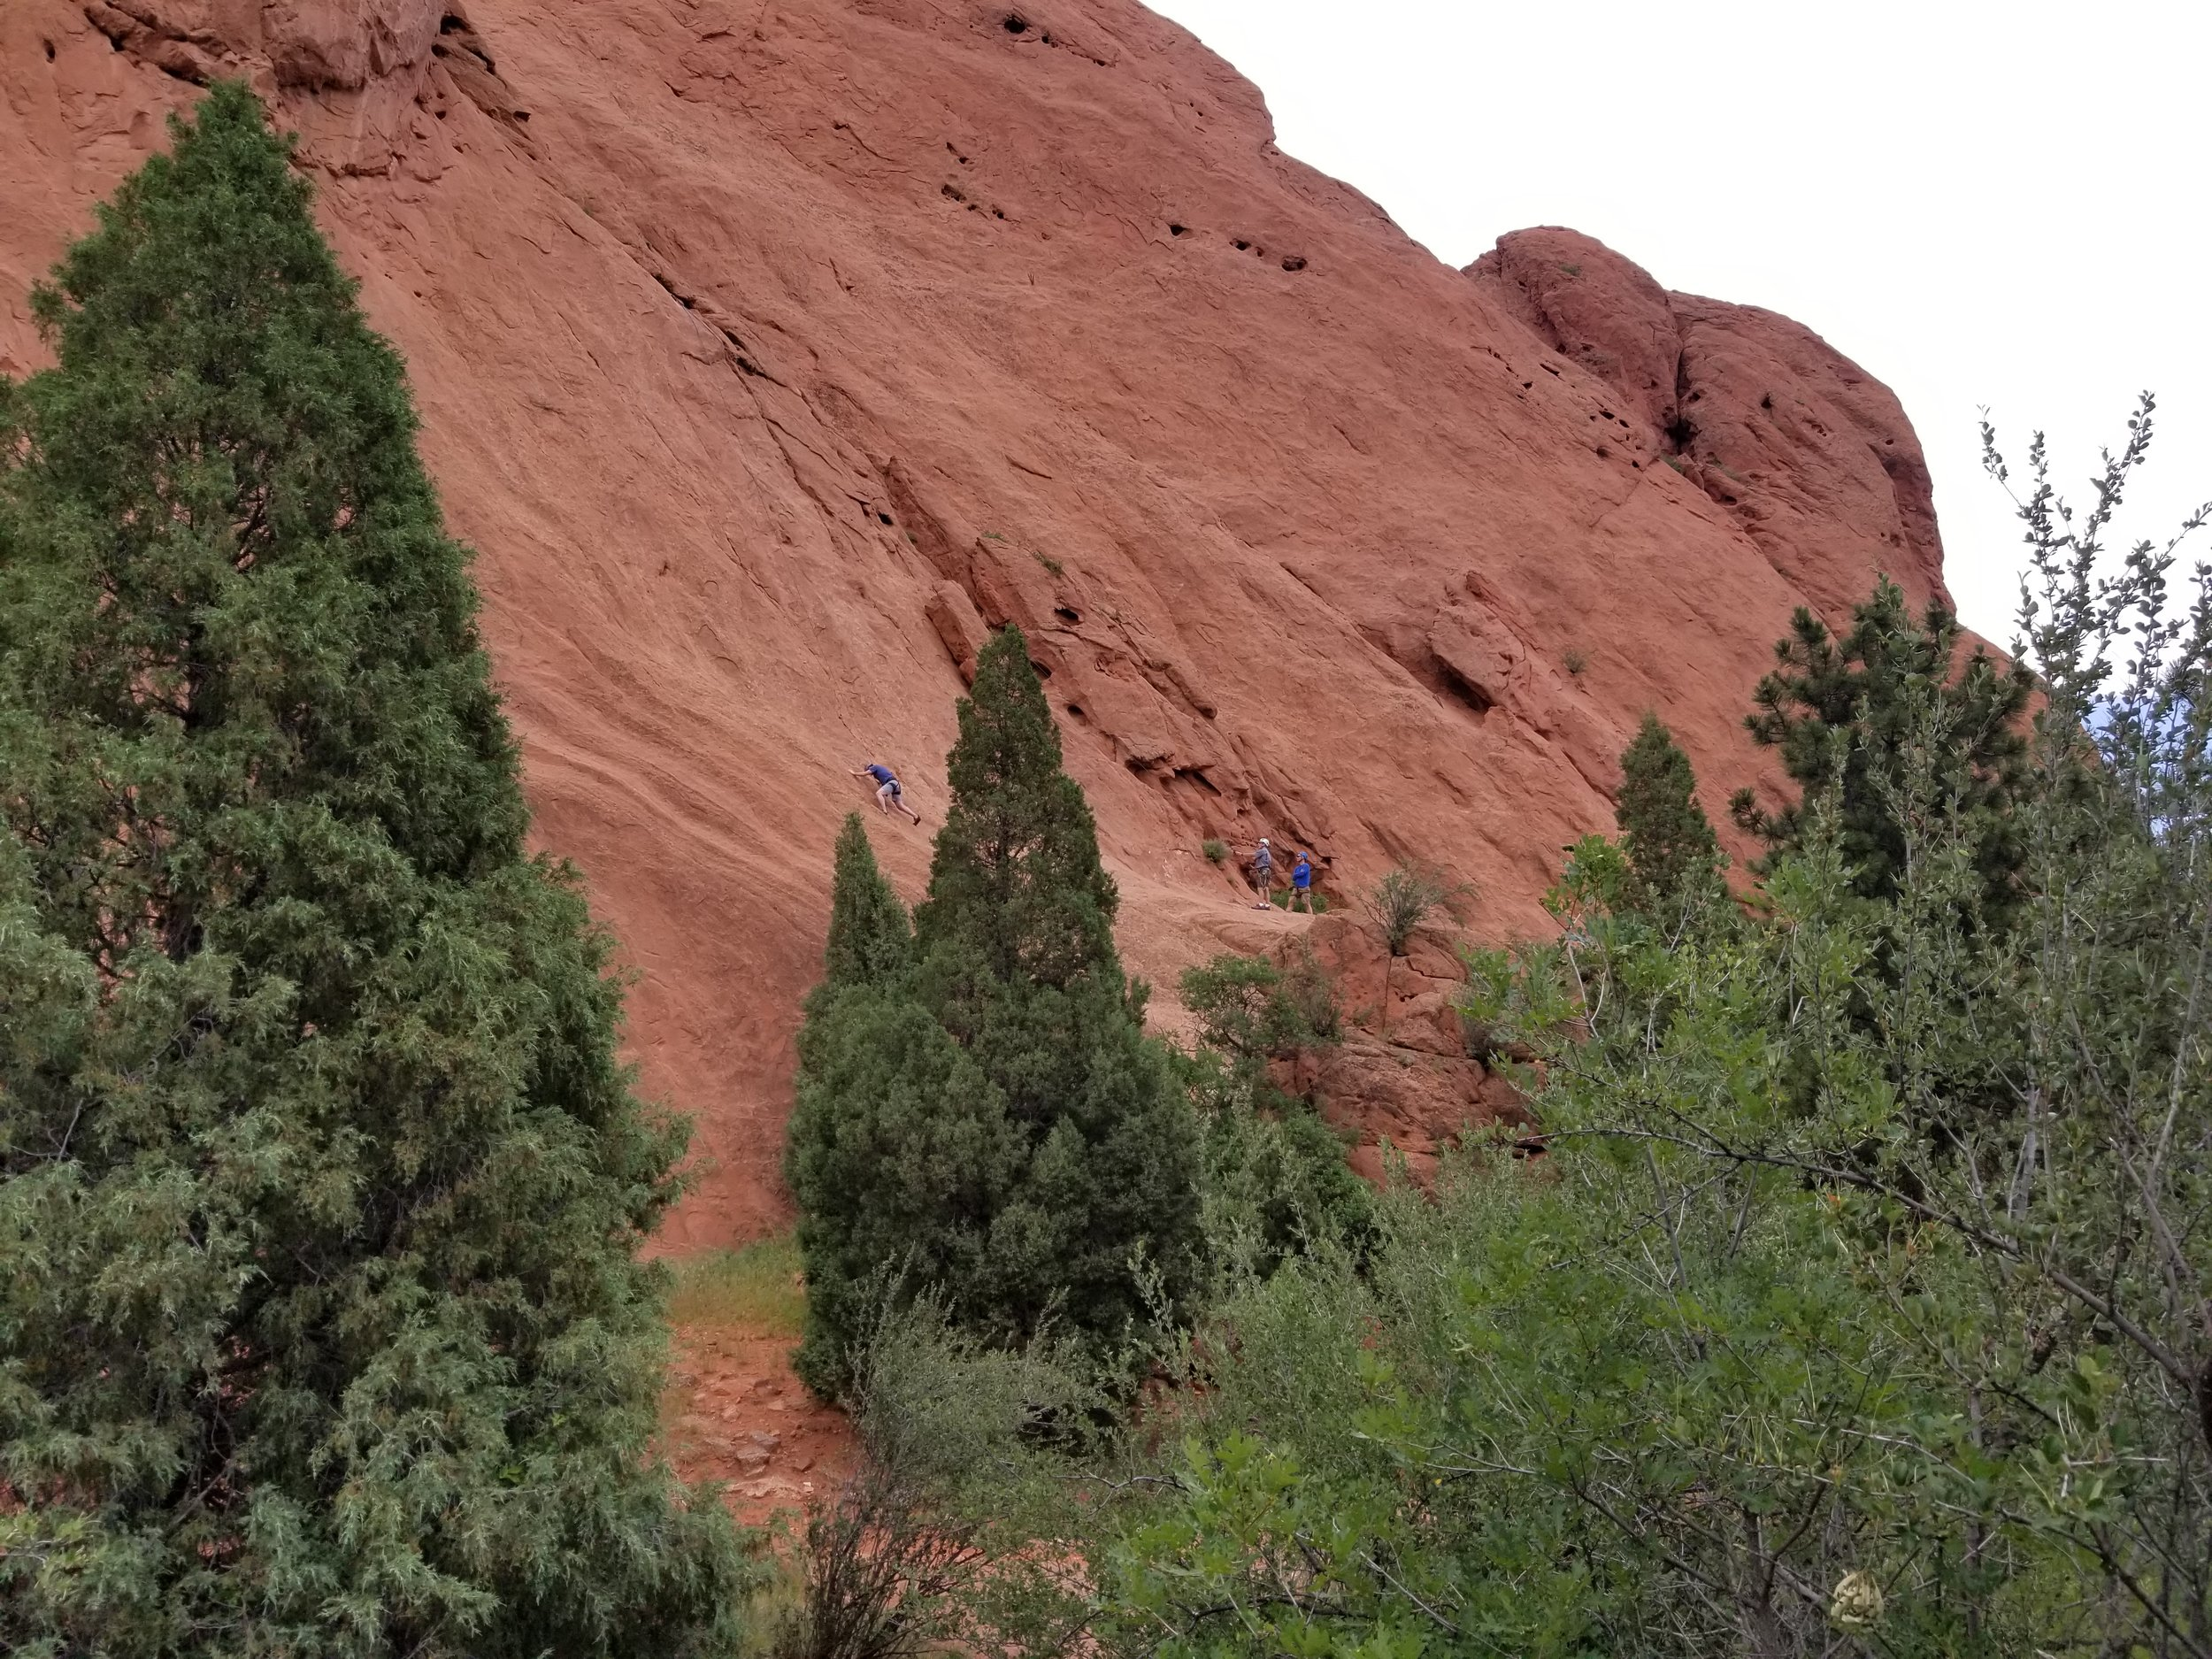 Can you spot the rock climbers?  You had to have a permit and prior training before they would let you up.